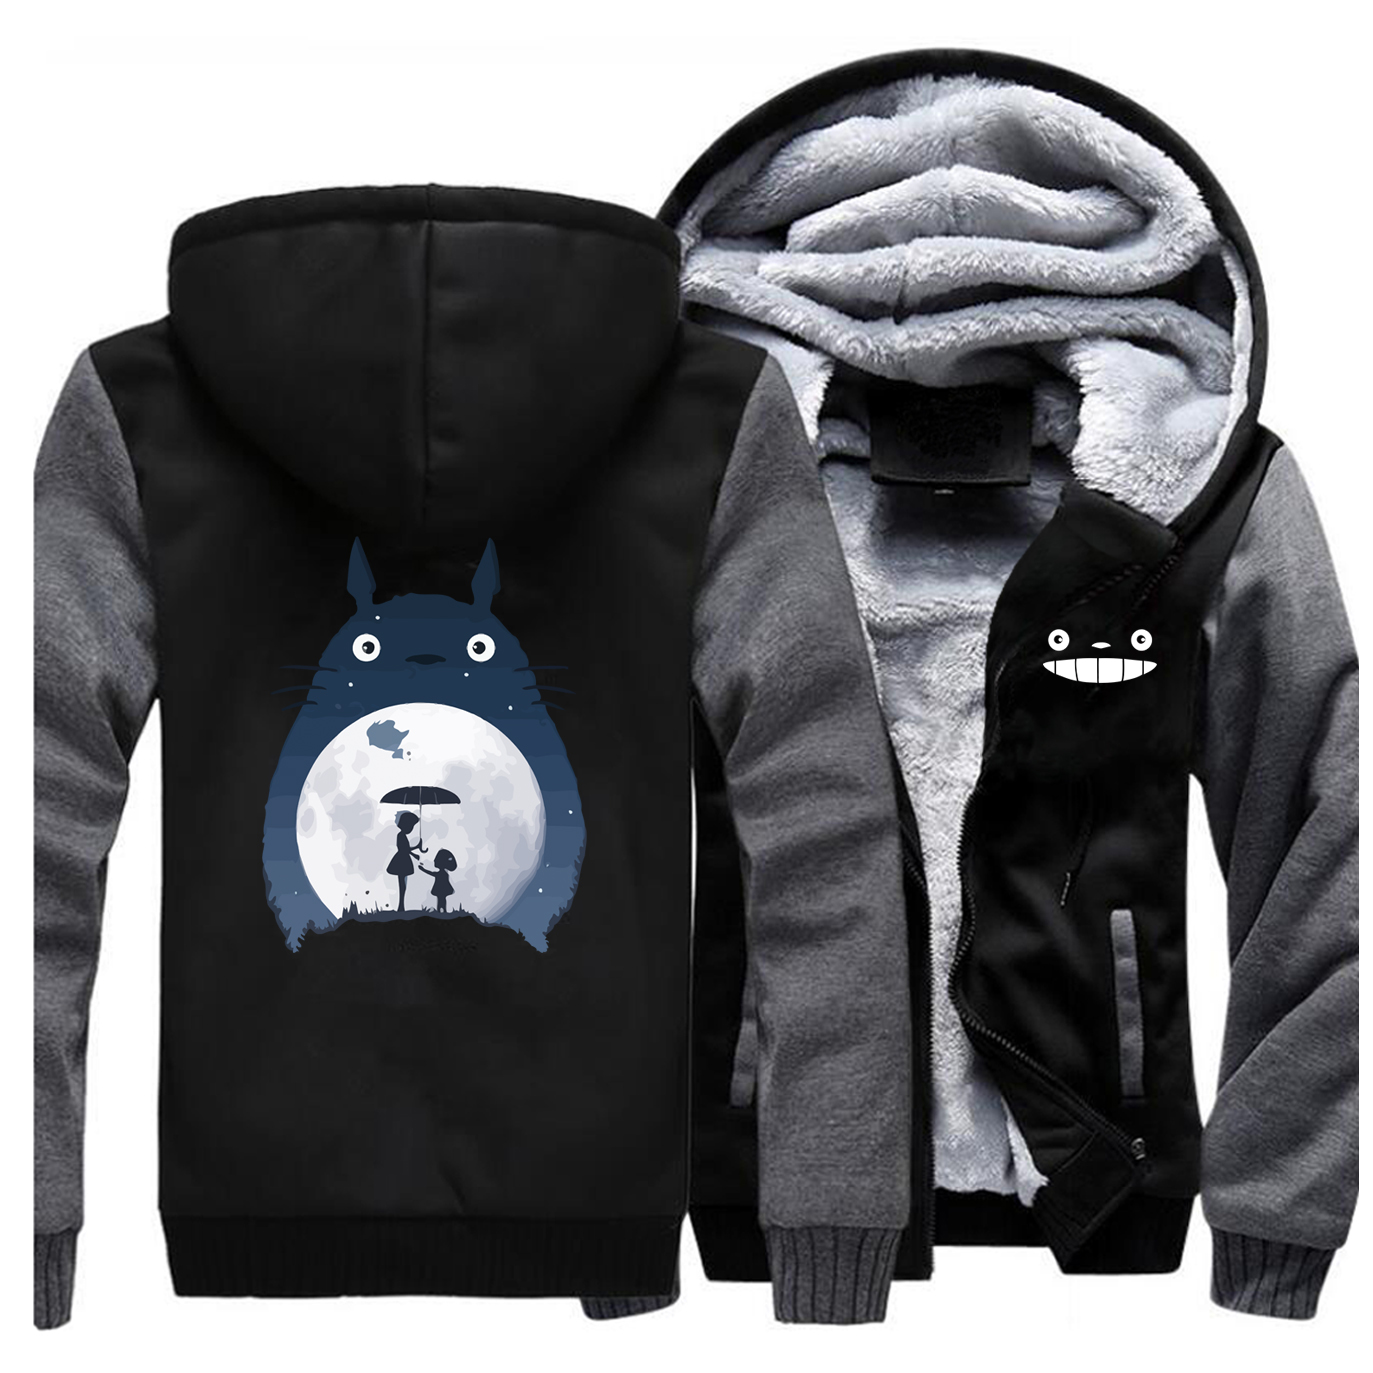 Image 5 - Tonari No Totoro Men Thick Hoodies Sweatshirts Fleece Warm Zipper Coa Vintage Japanese Anime Jacket Streetwear Winter Hoodie-in Hoodies & Sweatshirts from Men's Clothing